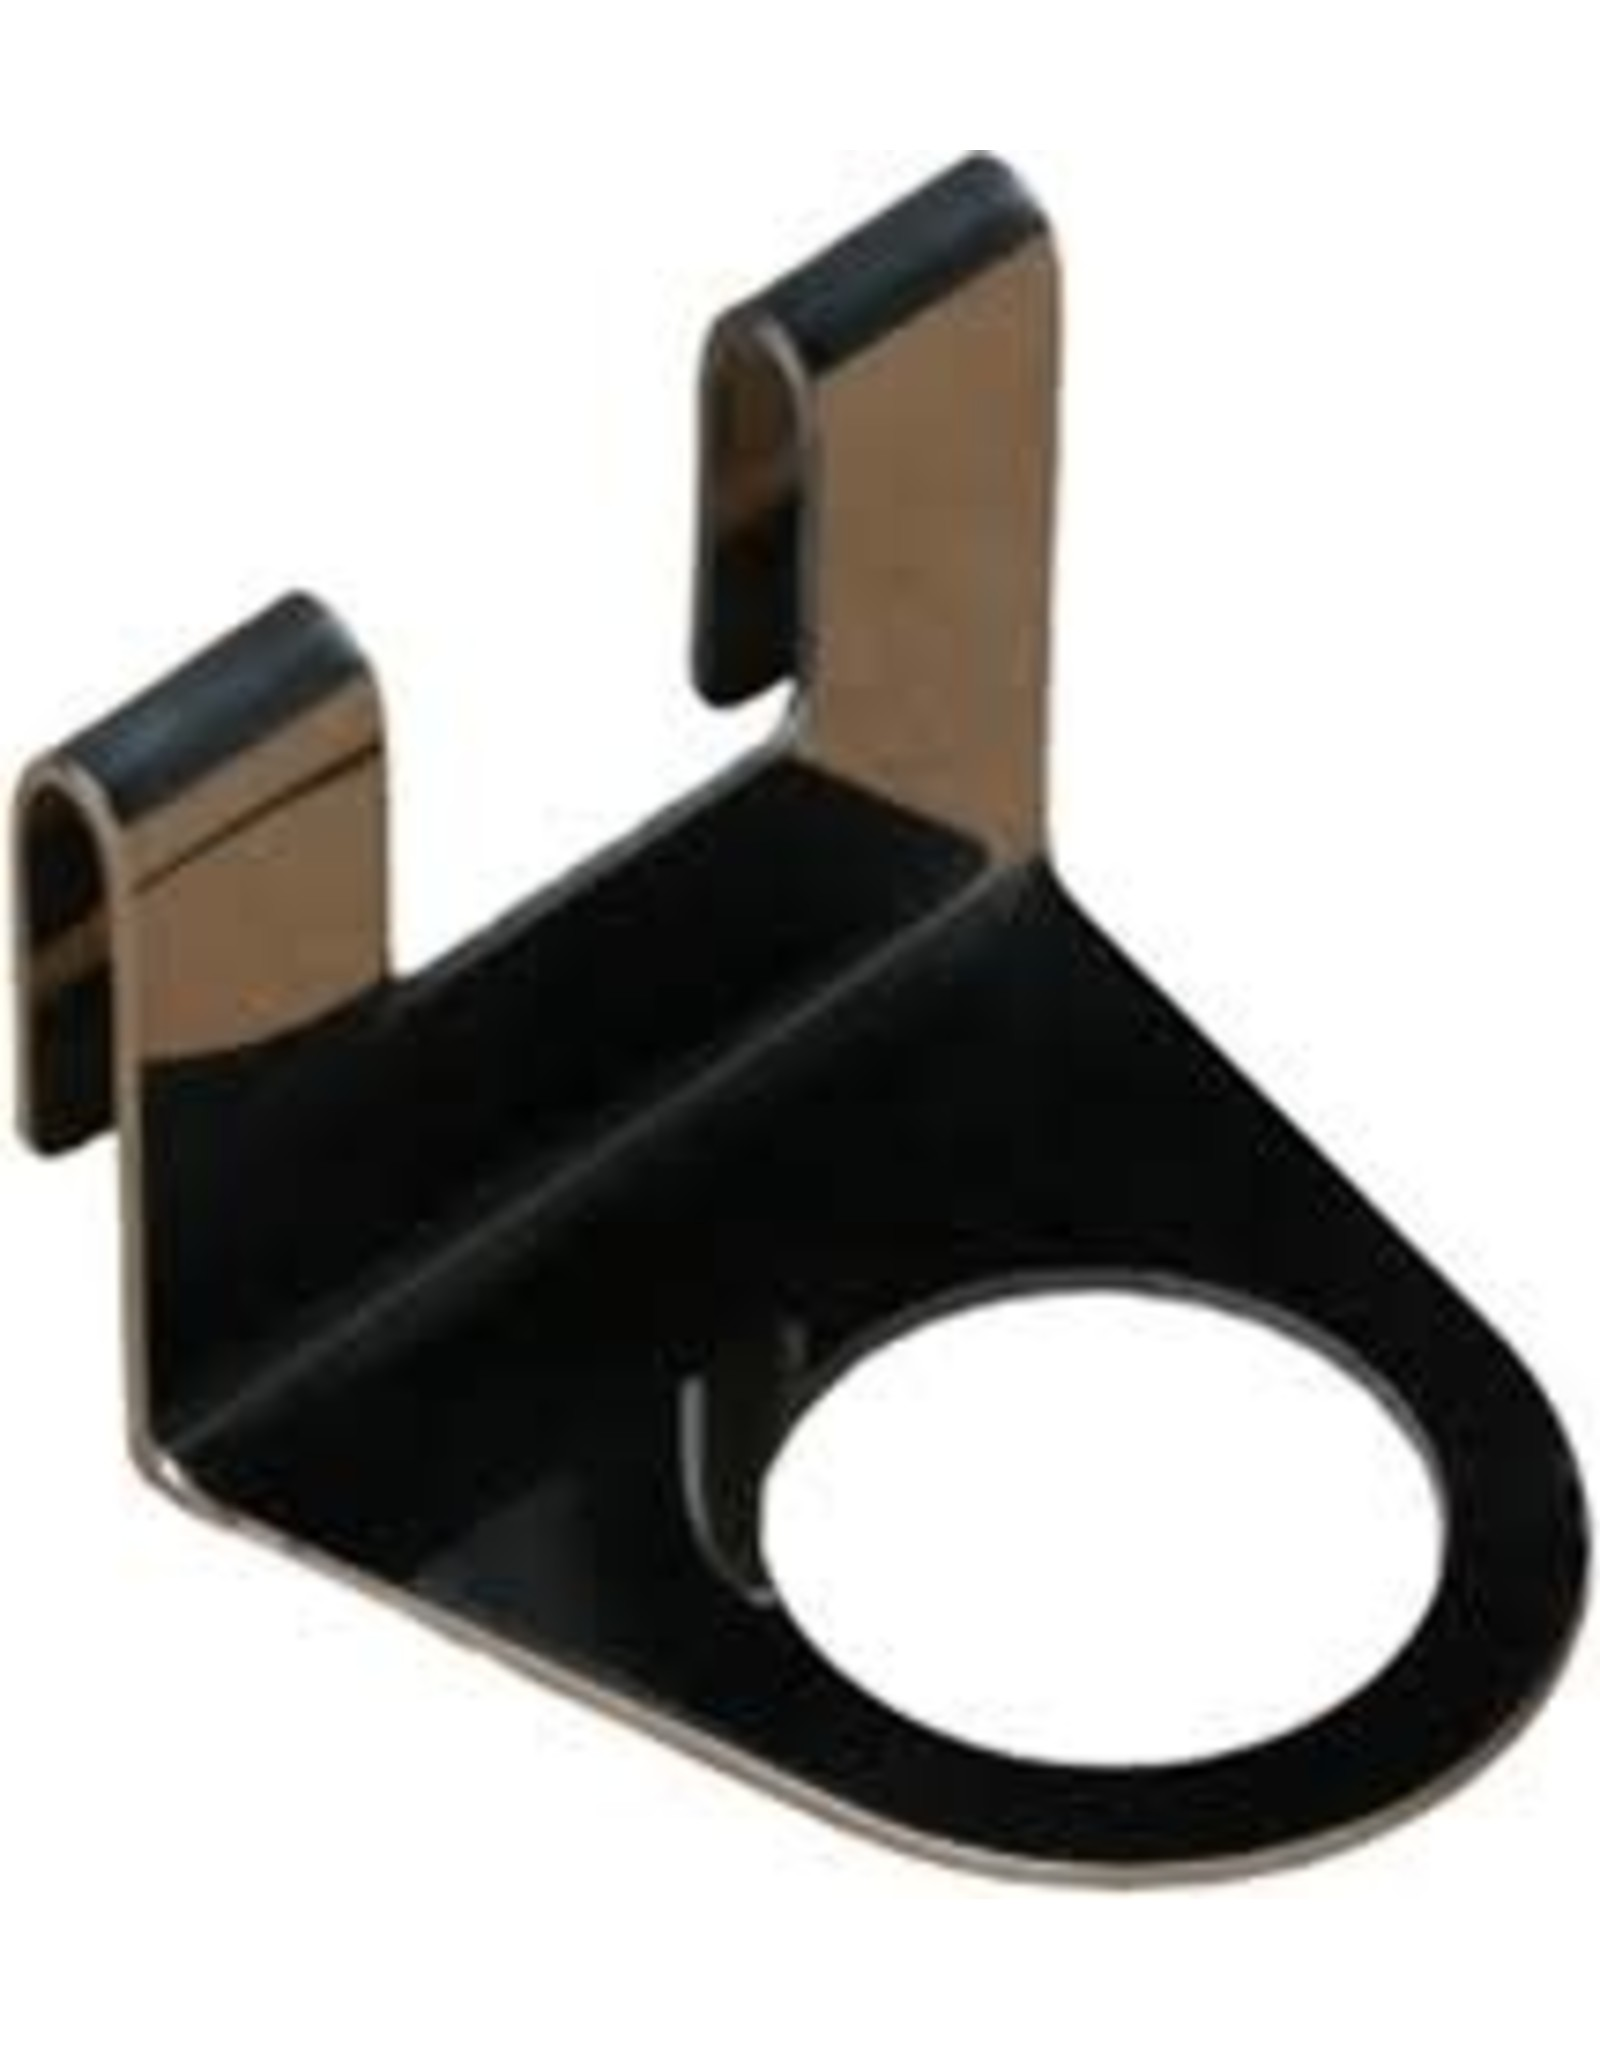 SeaSucker Stainless steel window clip for cable locks.